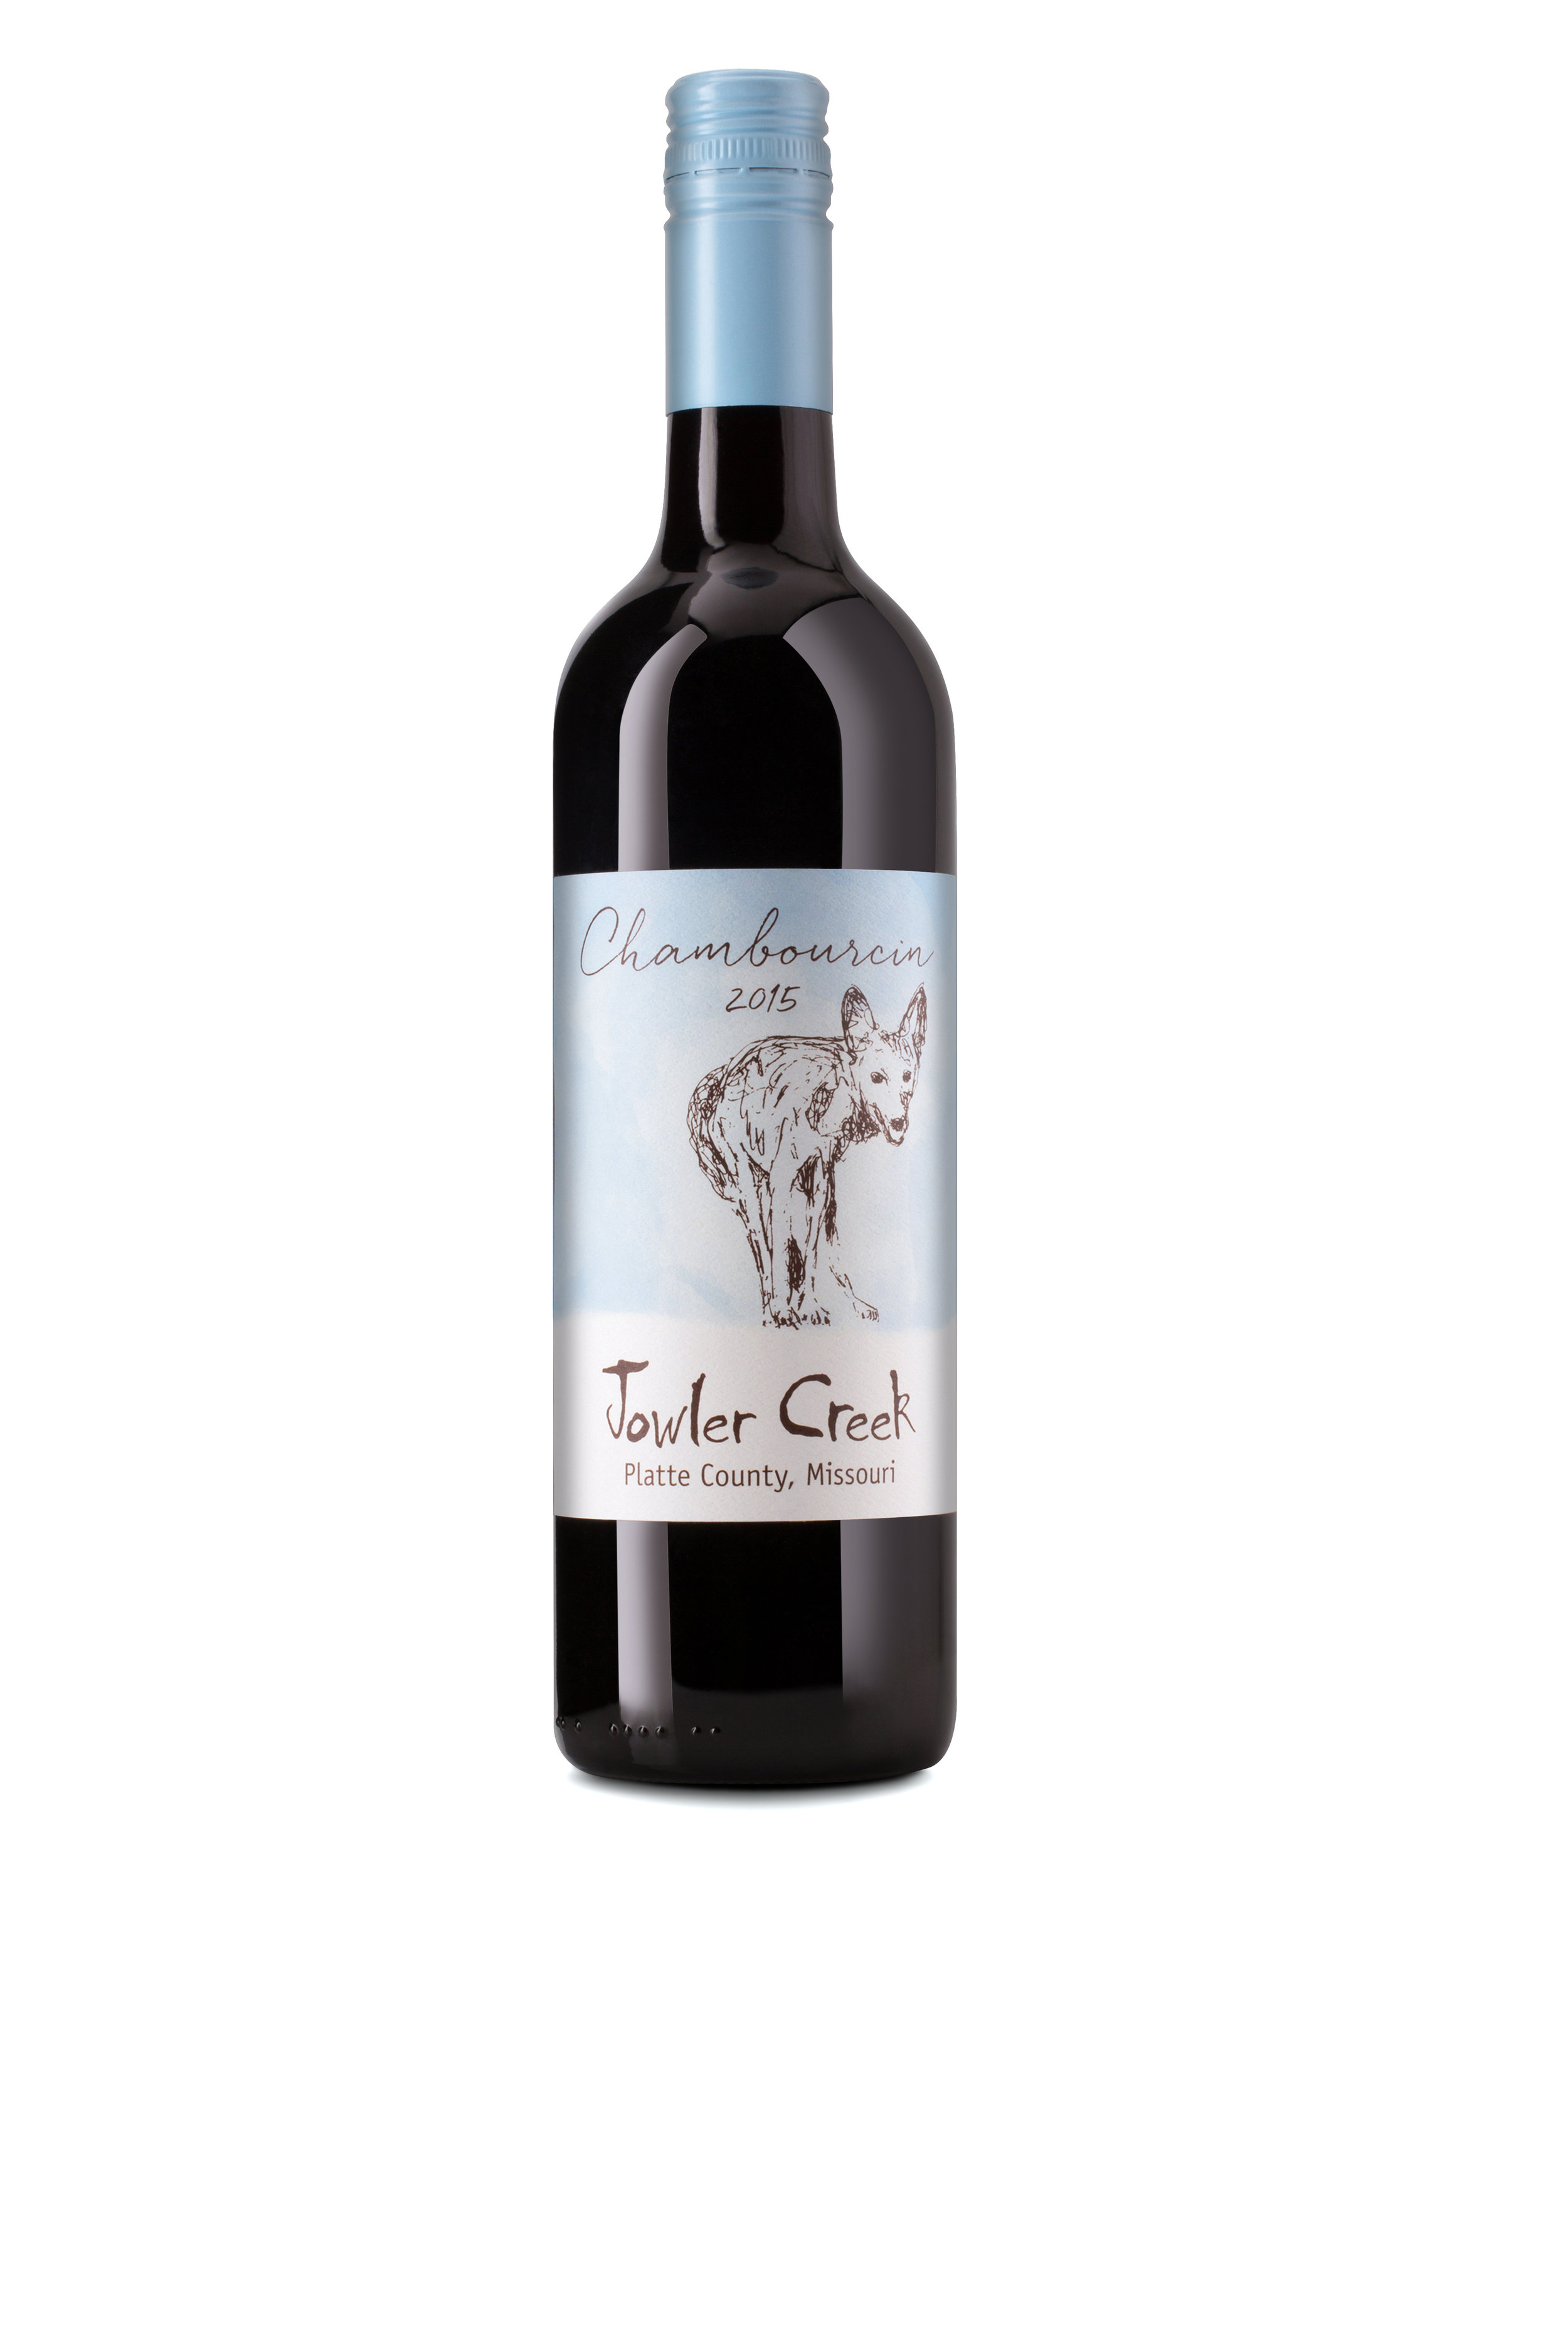 Jowler Creek Winery  makes the best Chambourcin wine in Missouri. This wine is crafted in  Jowler Creek's  certified  sustainable winery   near Weston Mo, Kansas City MO and St. Joseph Mo